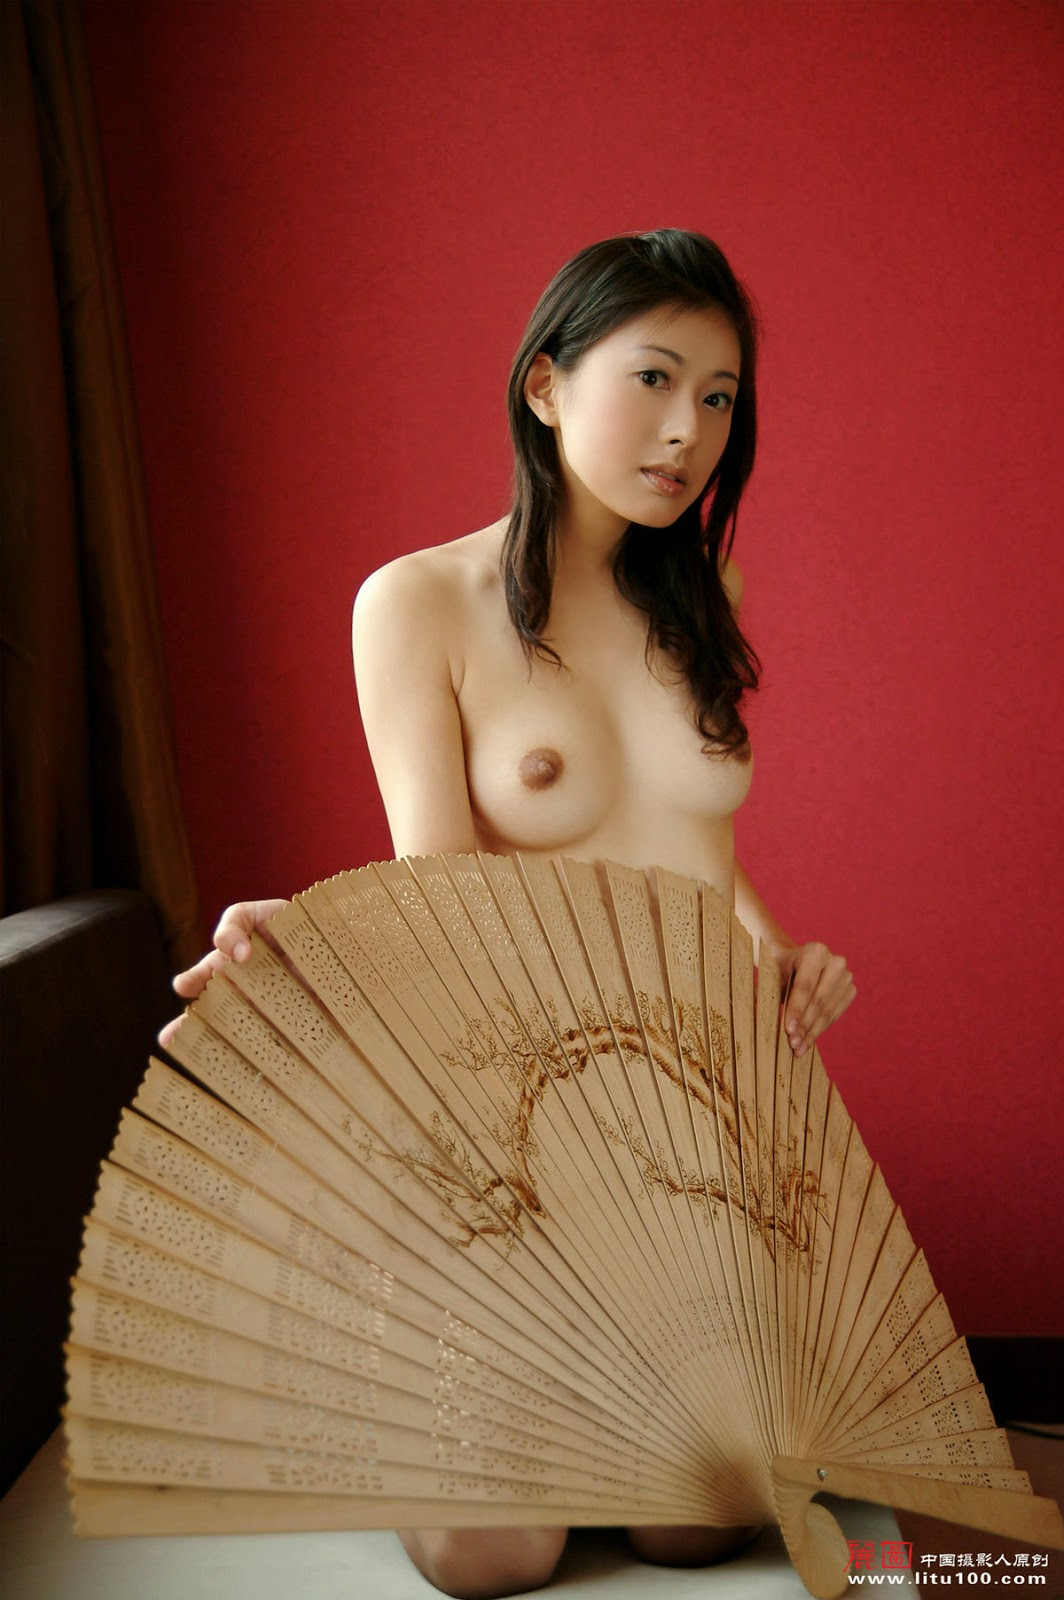 18 and asian 02 scene 3 6